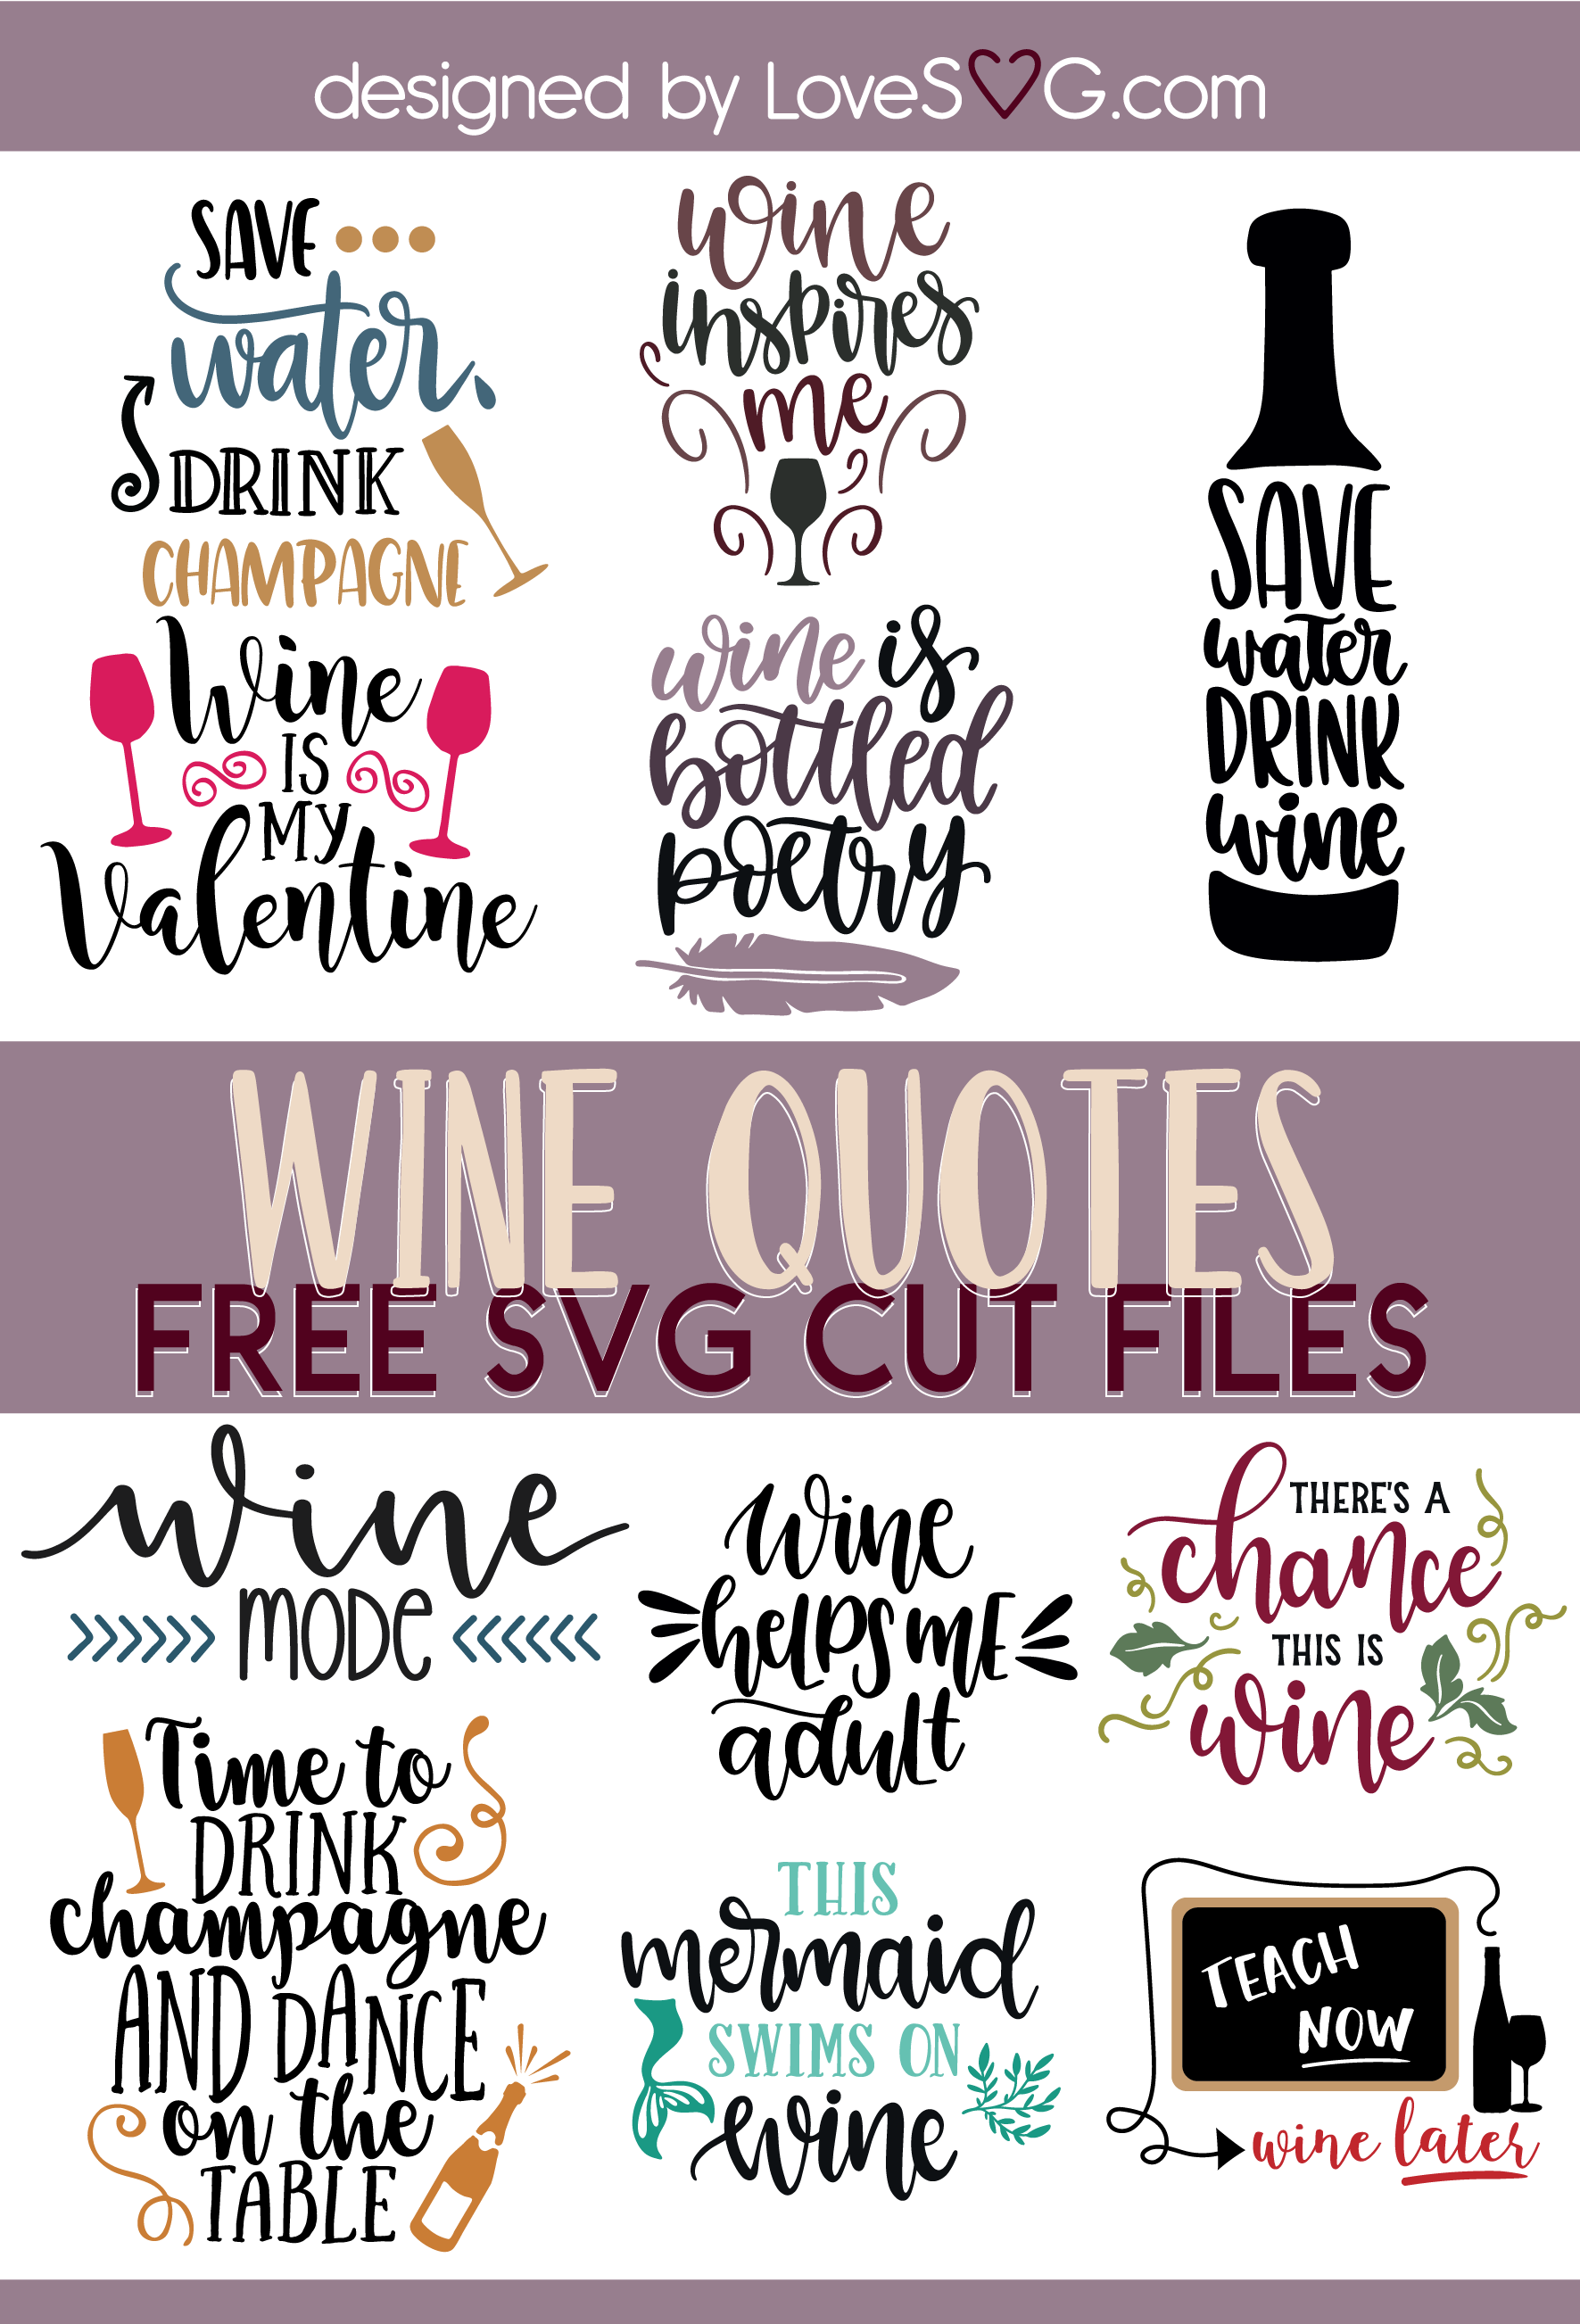 Free SVG Cut File for Cricut and Silhouette in SVG, PNG